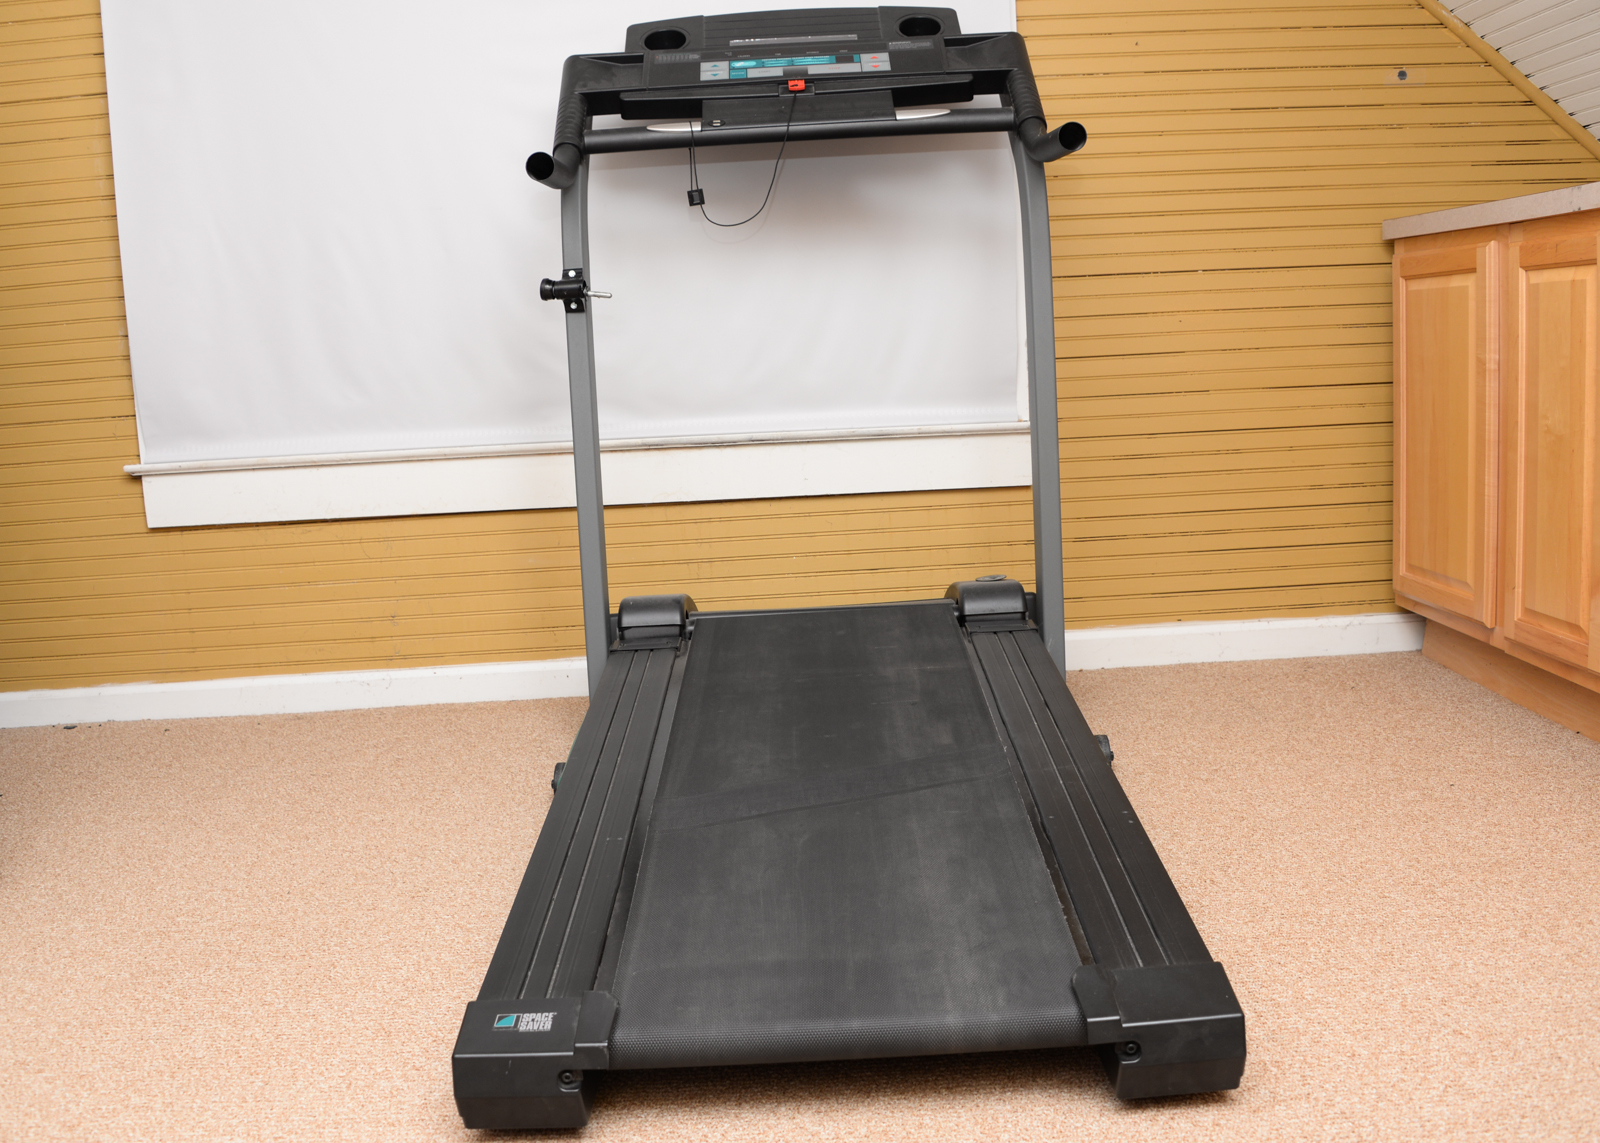 image treadmill 10.0 Image 10.0 Treadmill by ProForm : EBTH